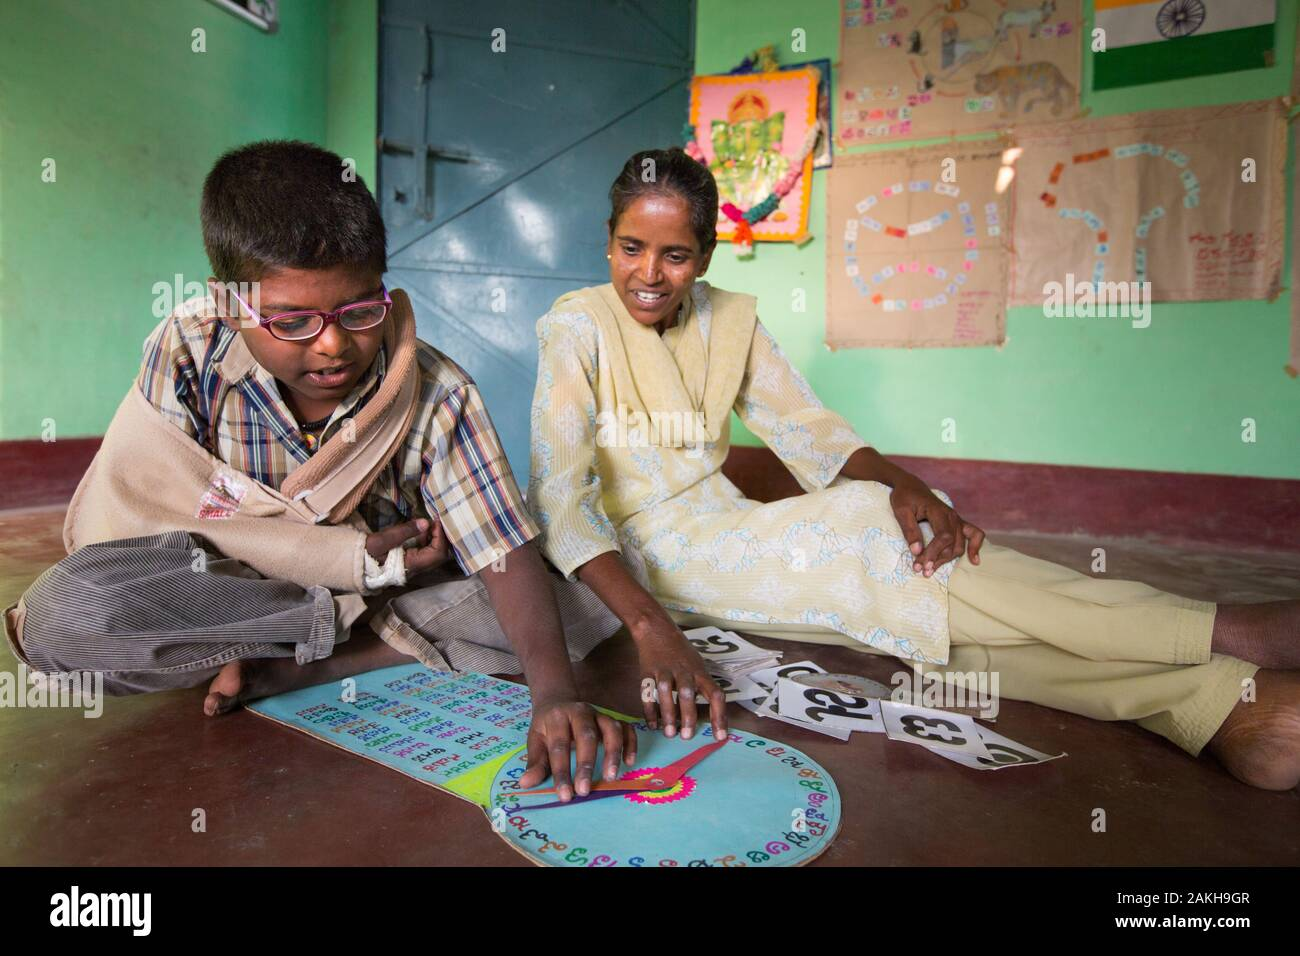 CAPTION: After-School Club (ASC) Coordinator Doddamma, who herself has rheumatoid arthritis, works on an activity designed under a visually impaired c Stock Photo